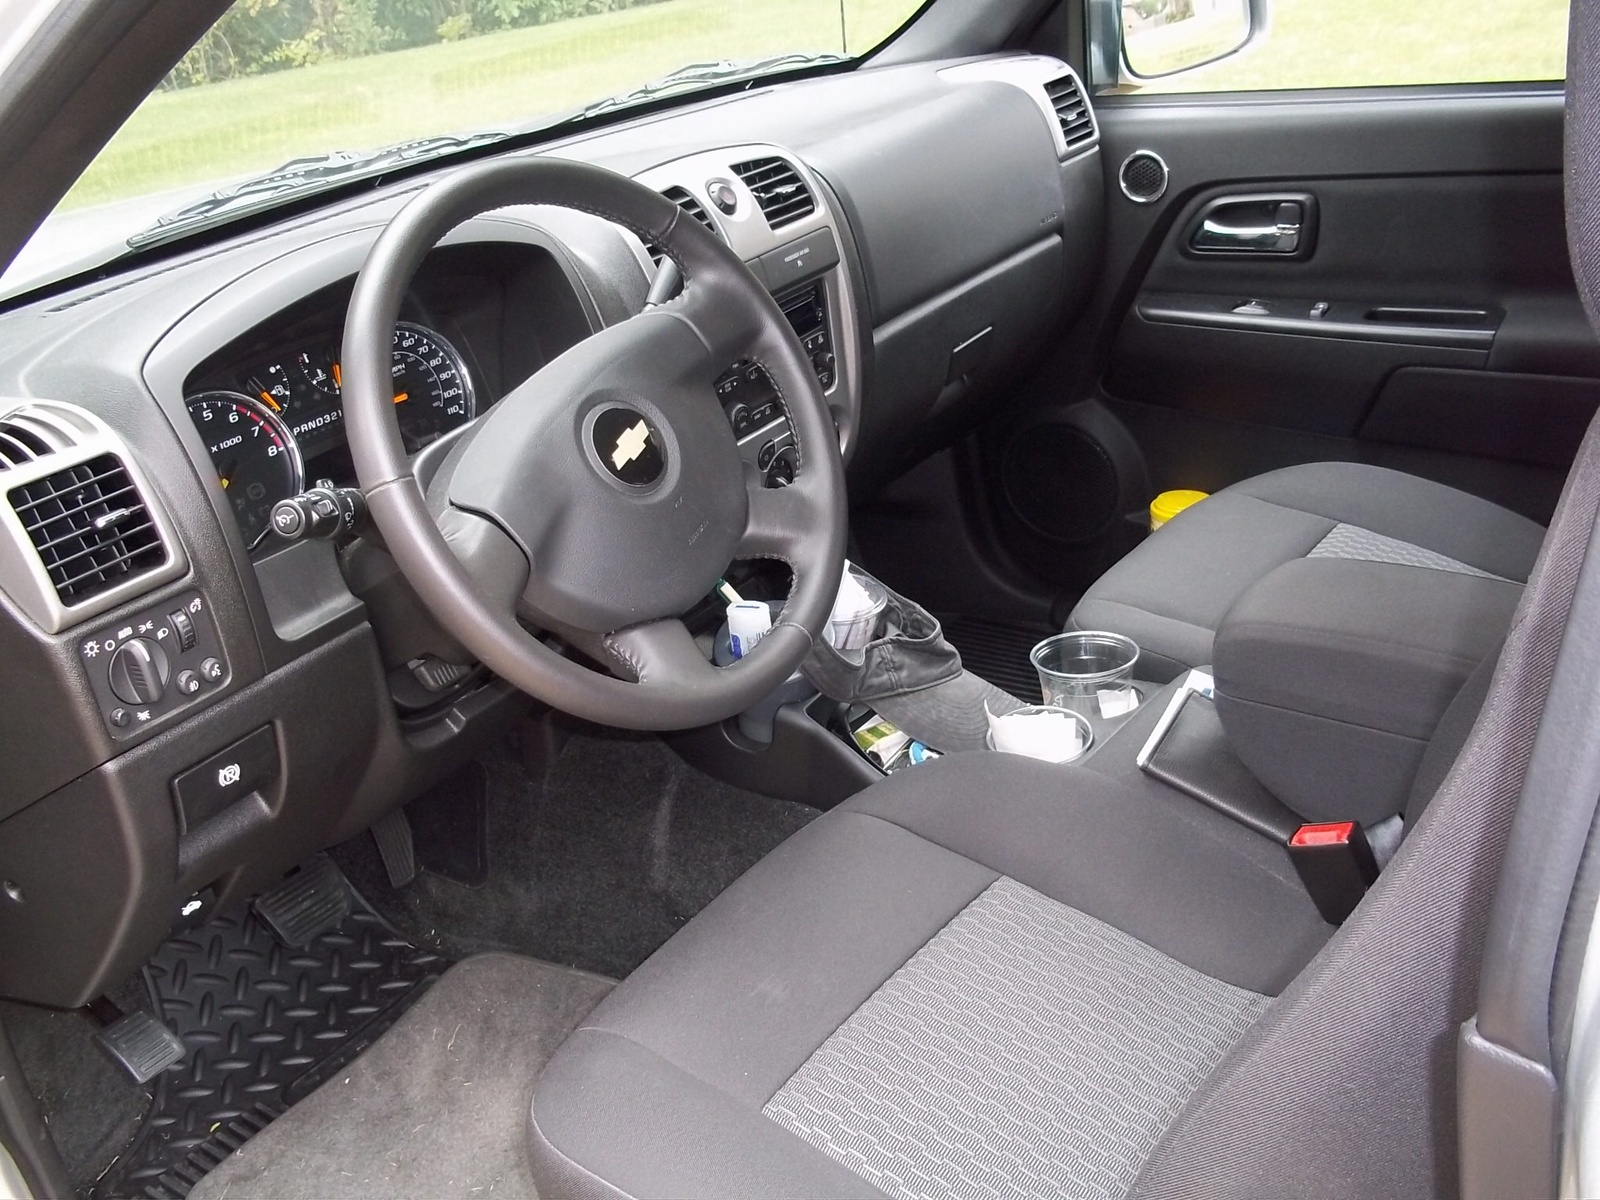 Picture of 2012 Chevrolet Colorado LT1 Crew Cab, interior